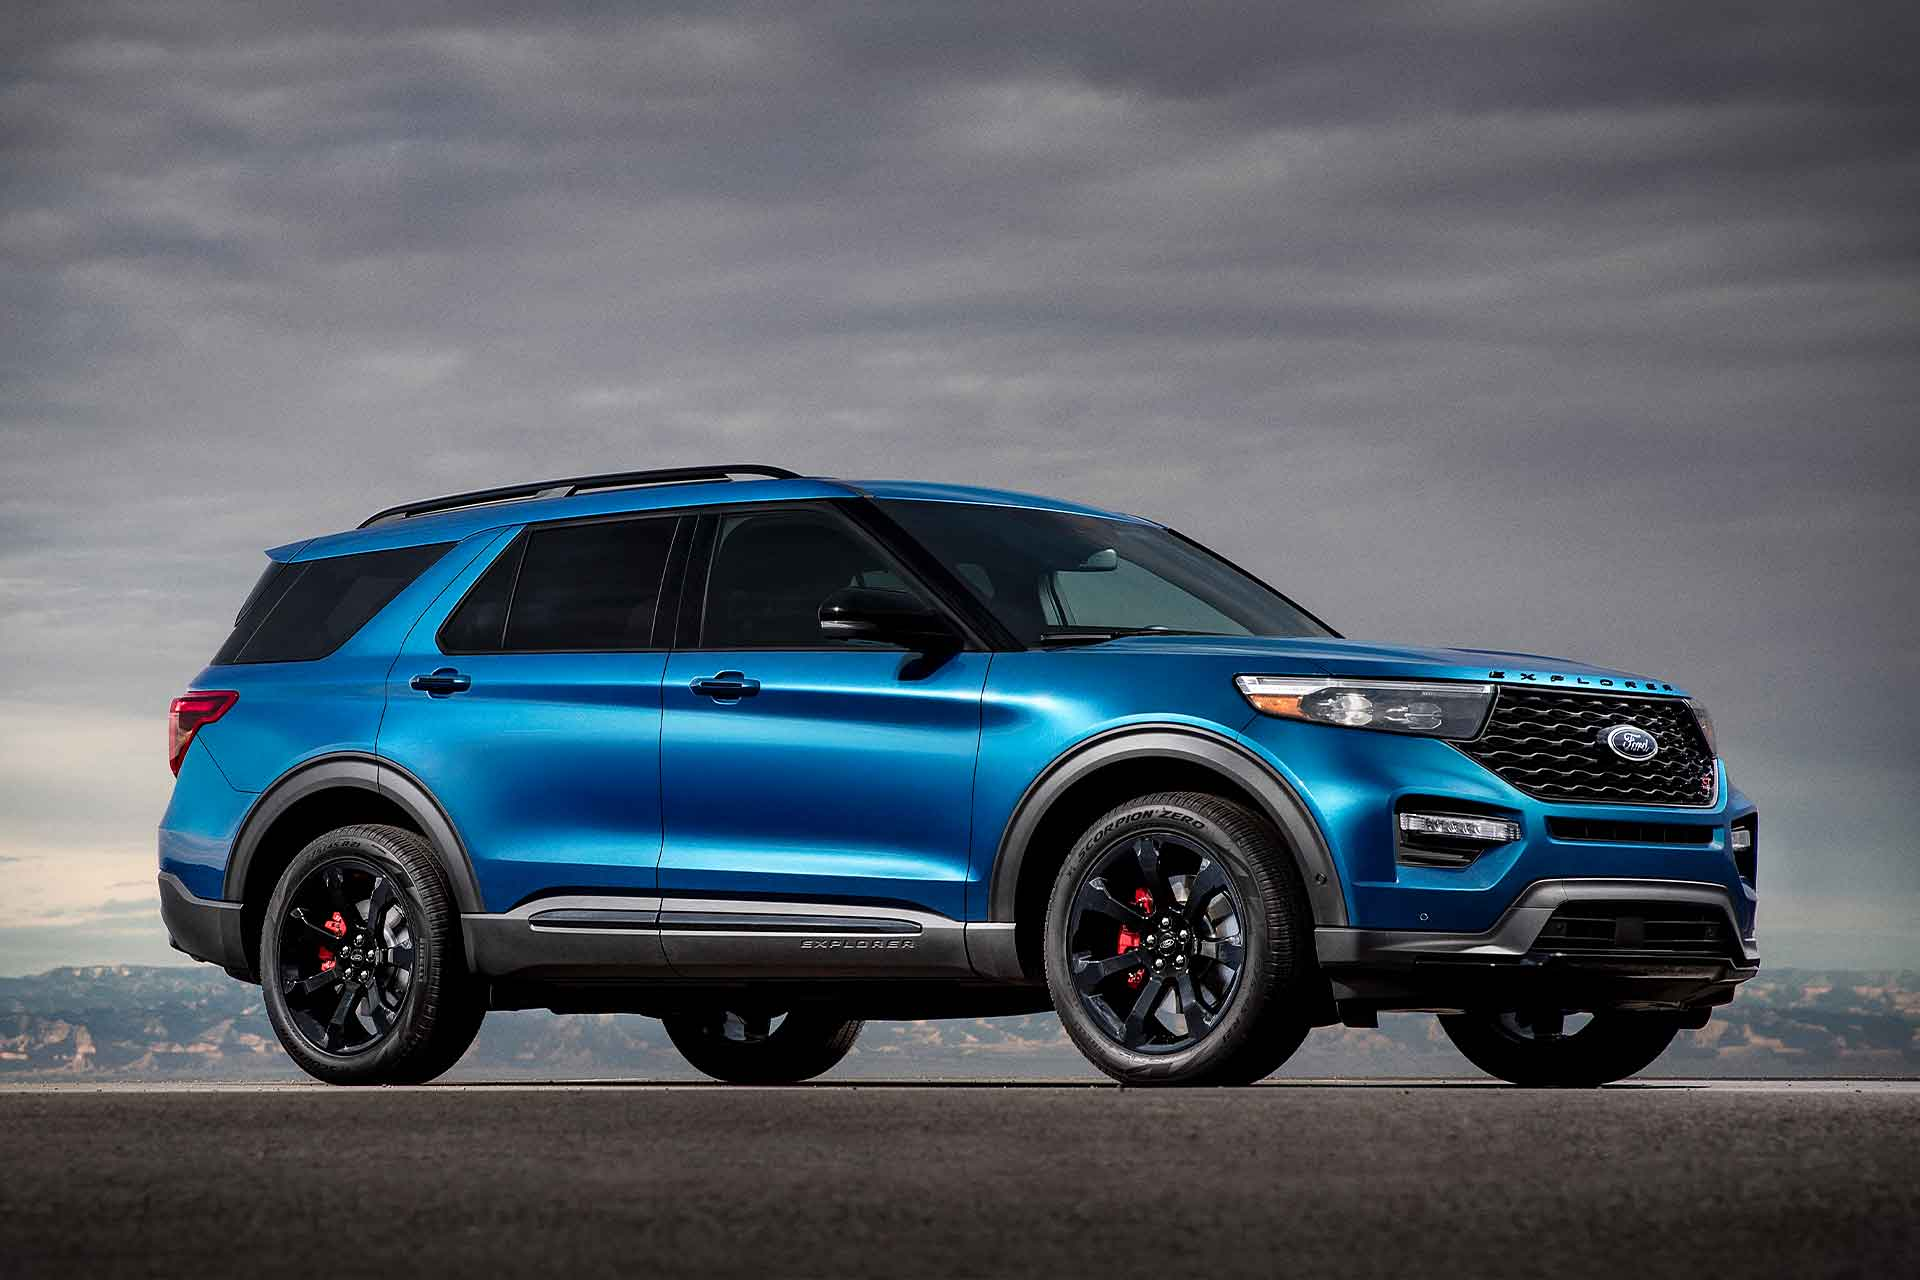 39 New Ford Usa Explorer 2020 Release Date